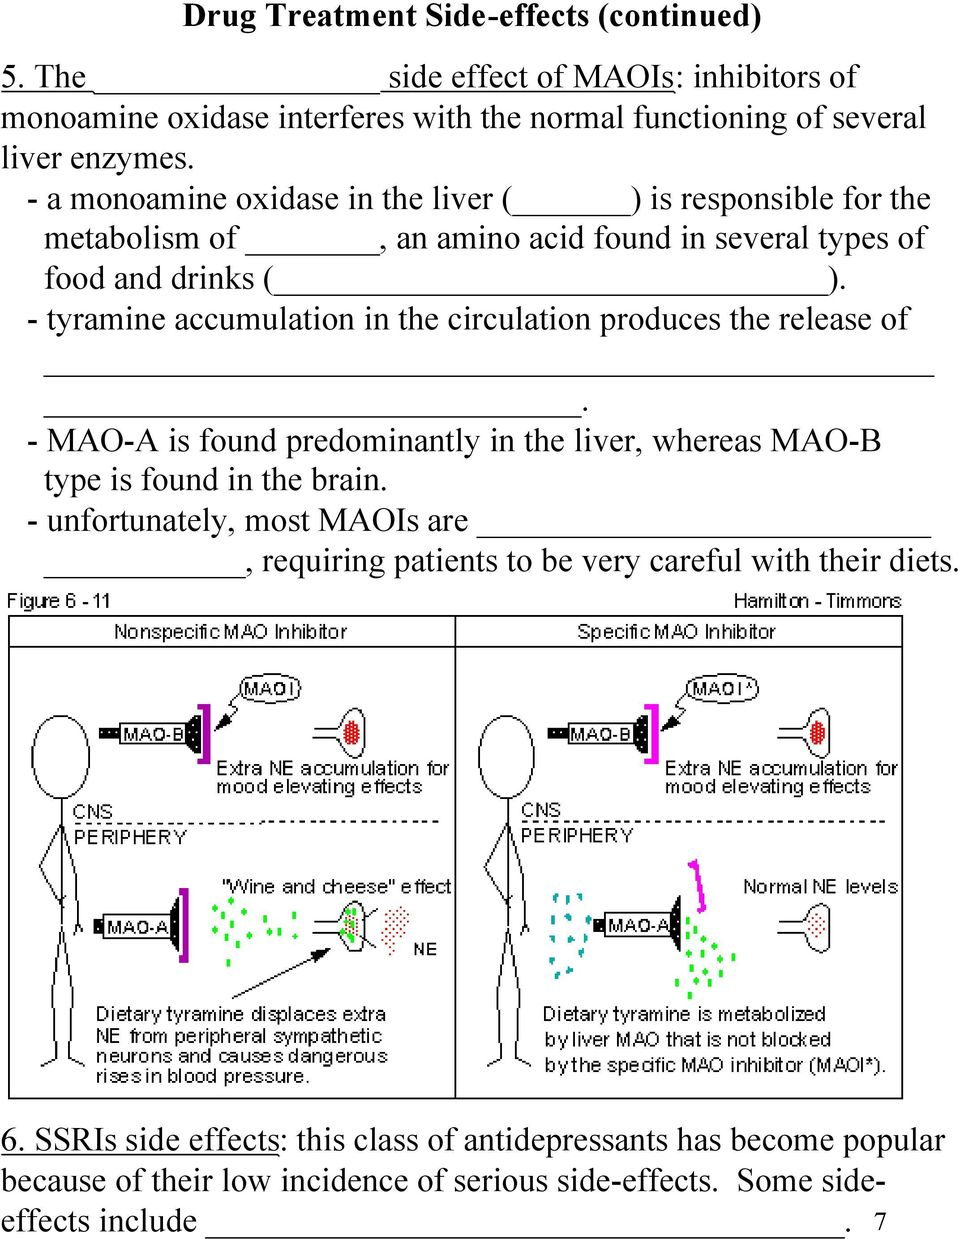 - tyramine accumulation in the circulation produces the release of. - MAO-A is found predominantly in the liver, whereas MAO-B type is found in the brain.